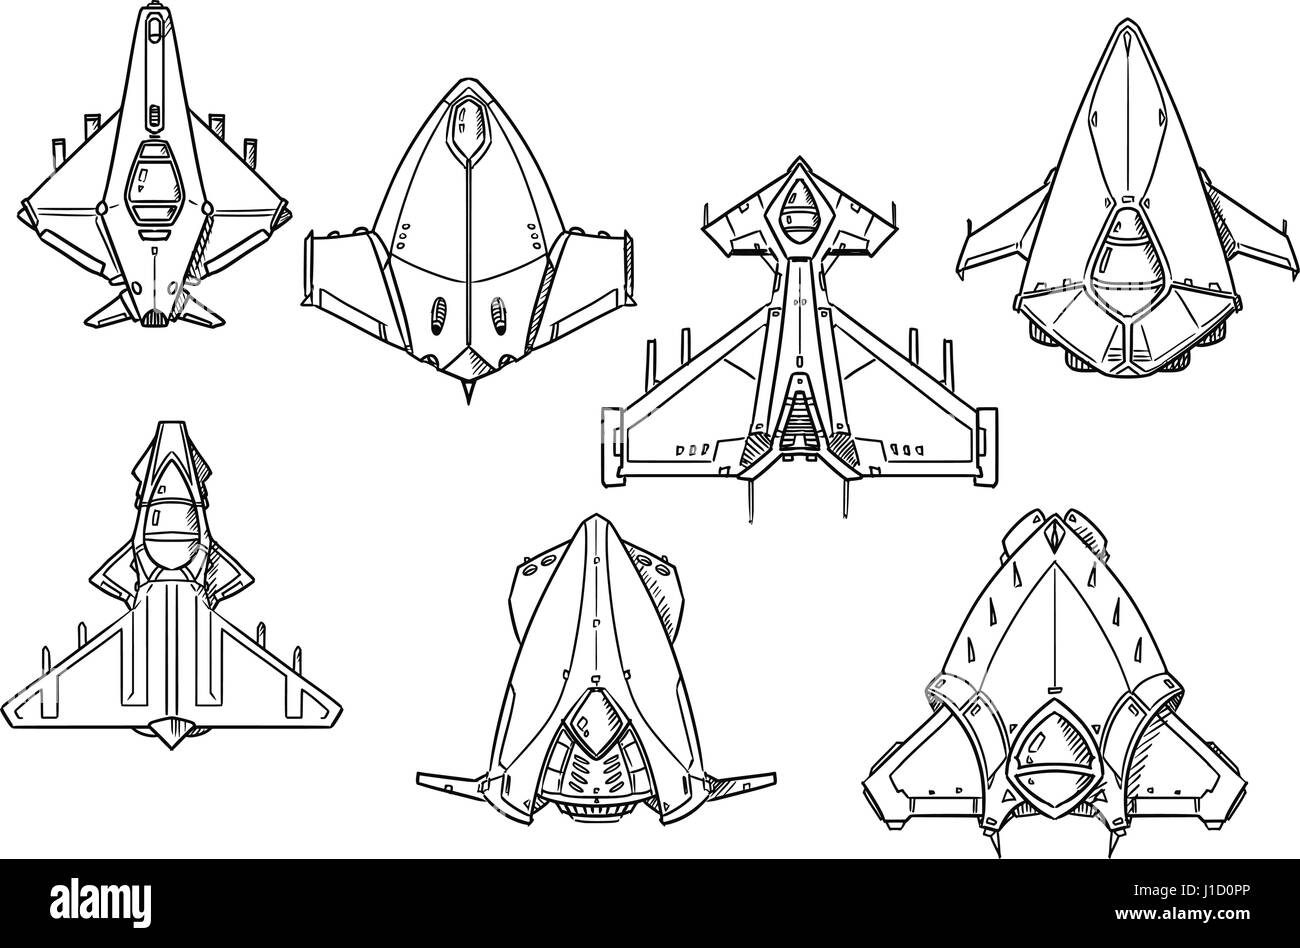 Set Of Hand Drawn Spacecraft Spaceship Designs Concept Art In Black